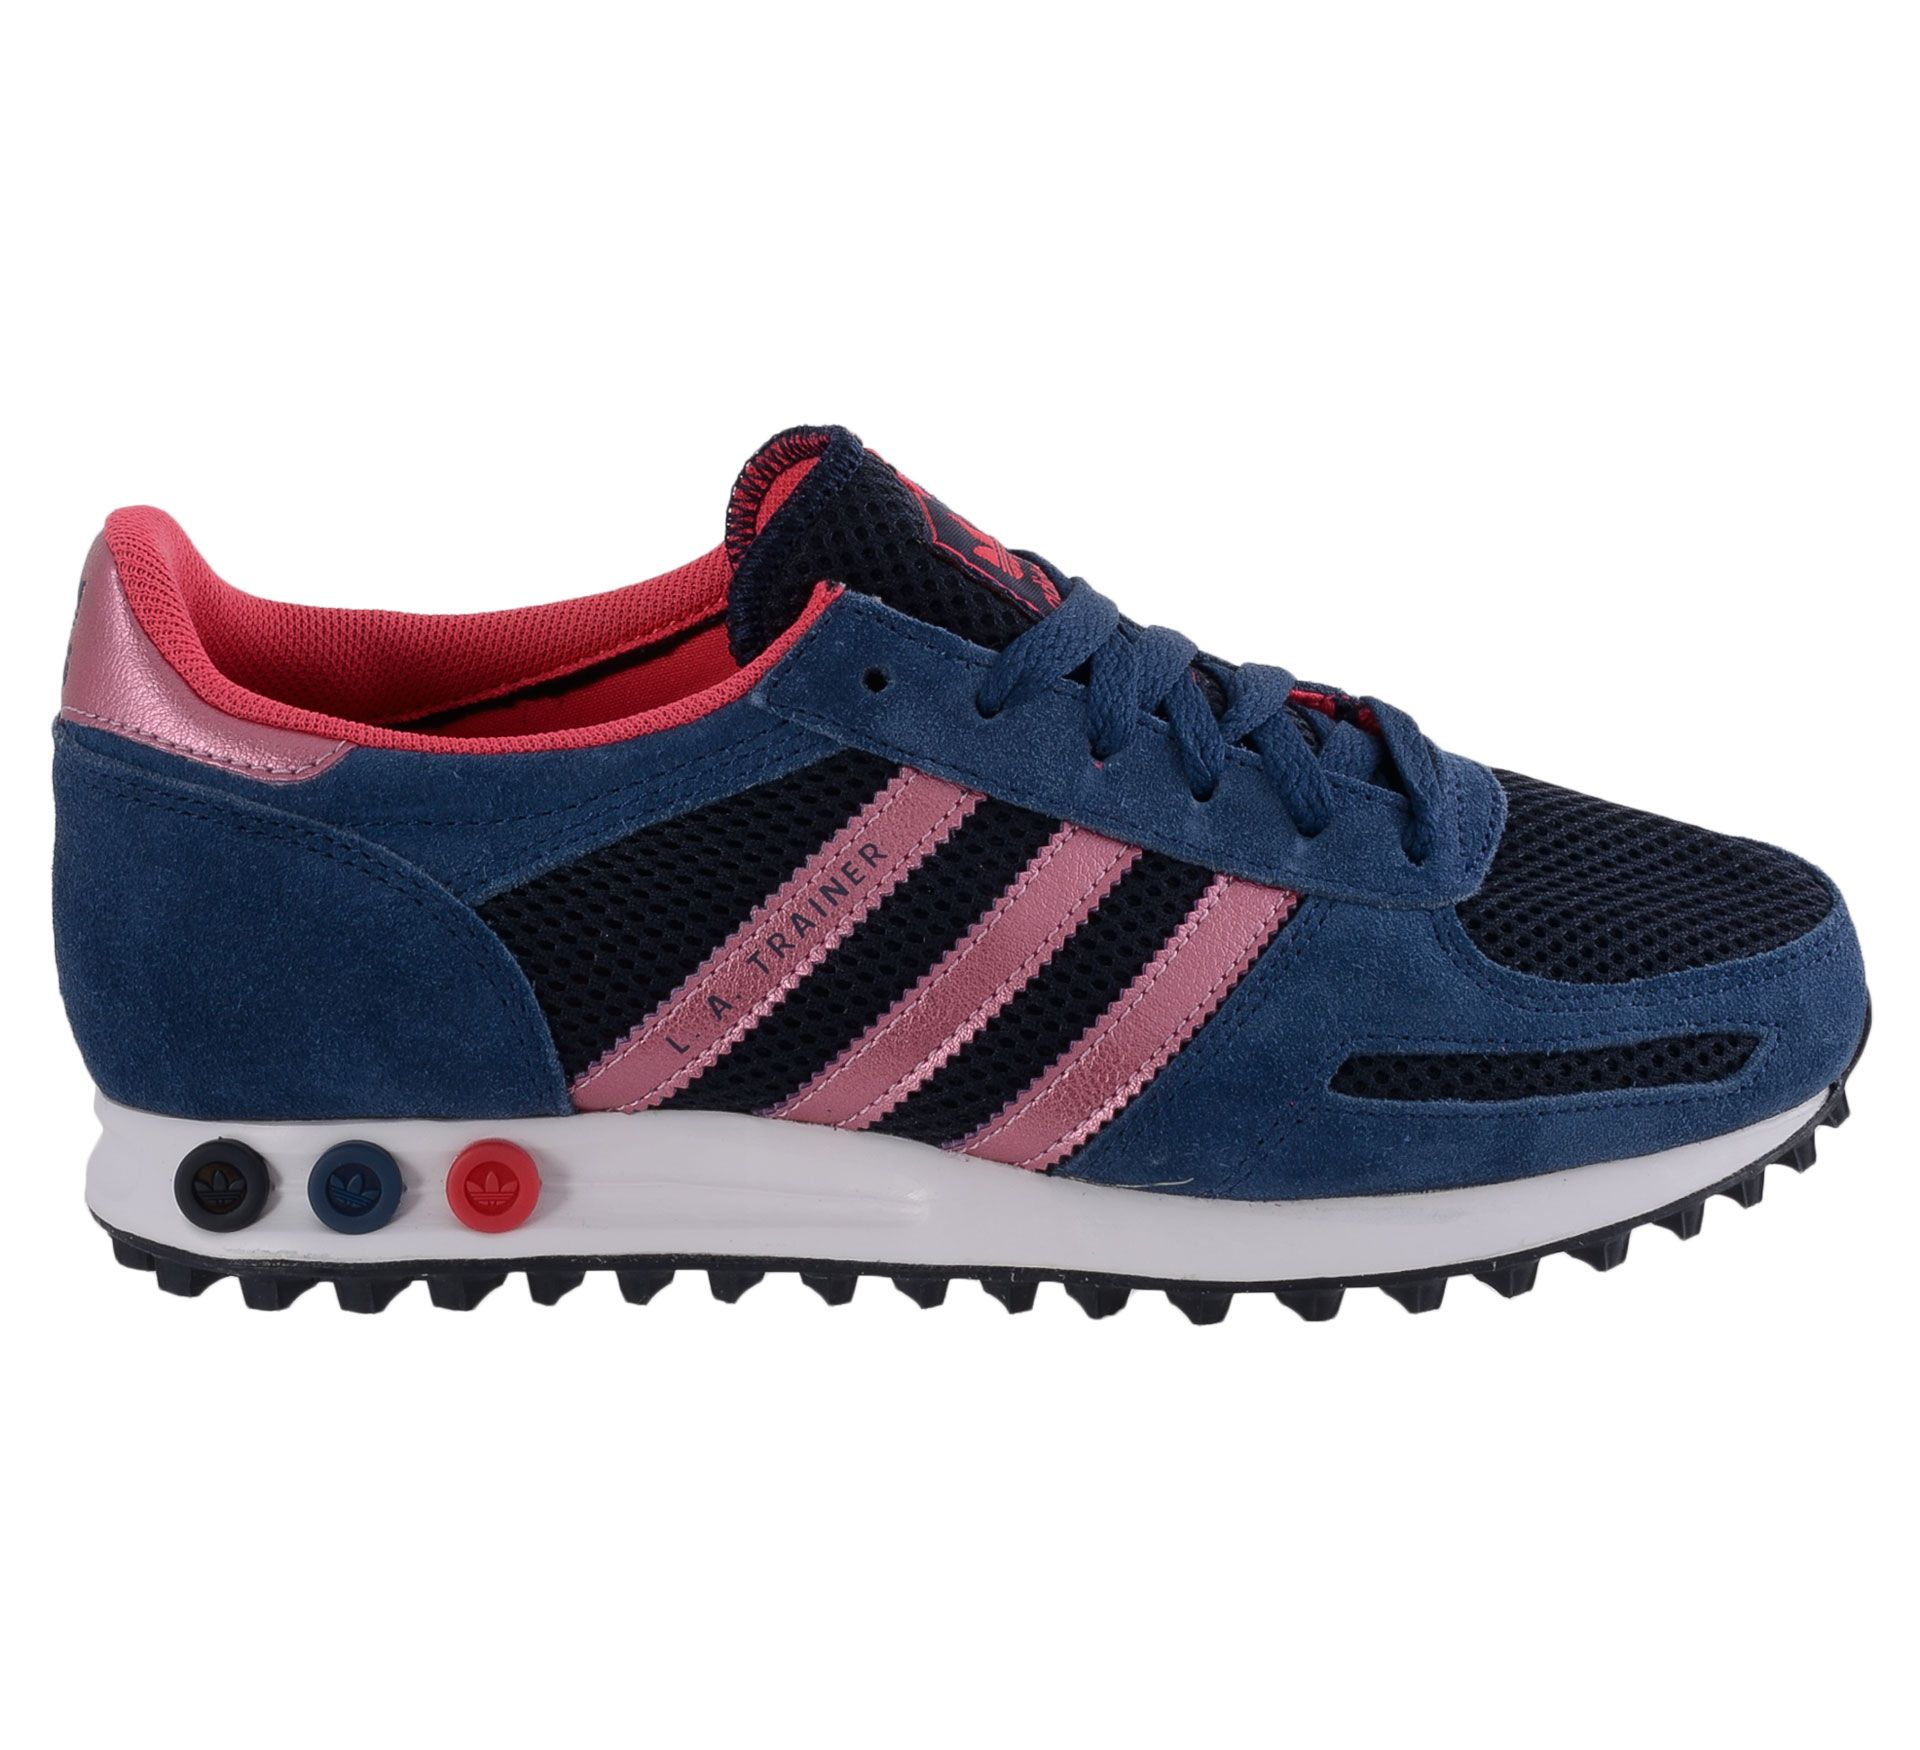 Adidas L.A. Trainer Sneakers Dames (navy - roze) | Adidas ...